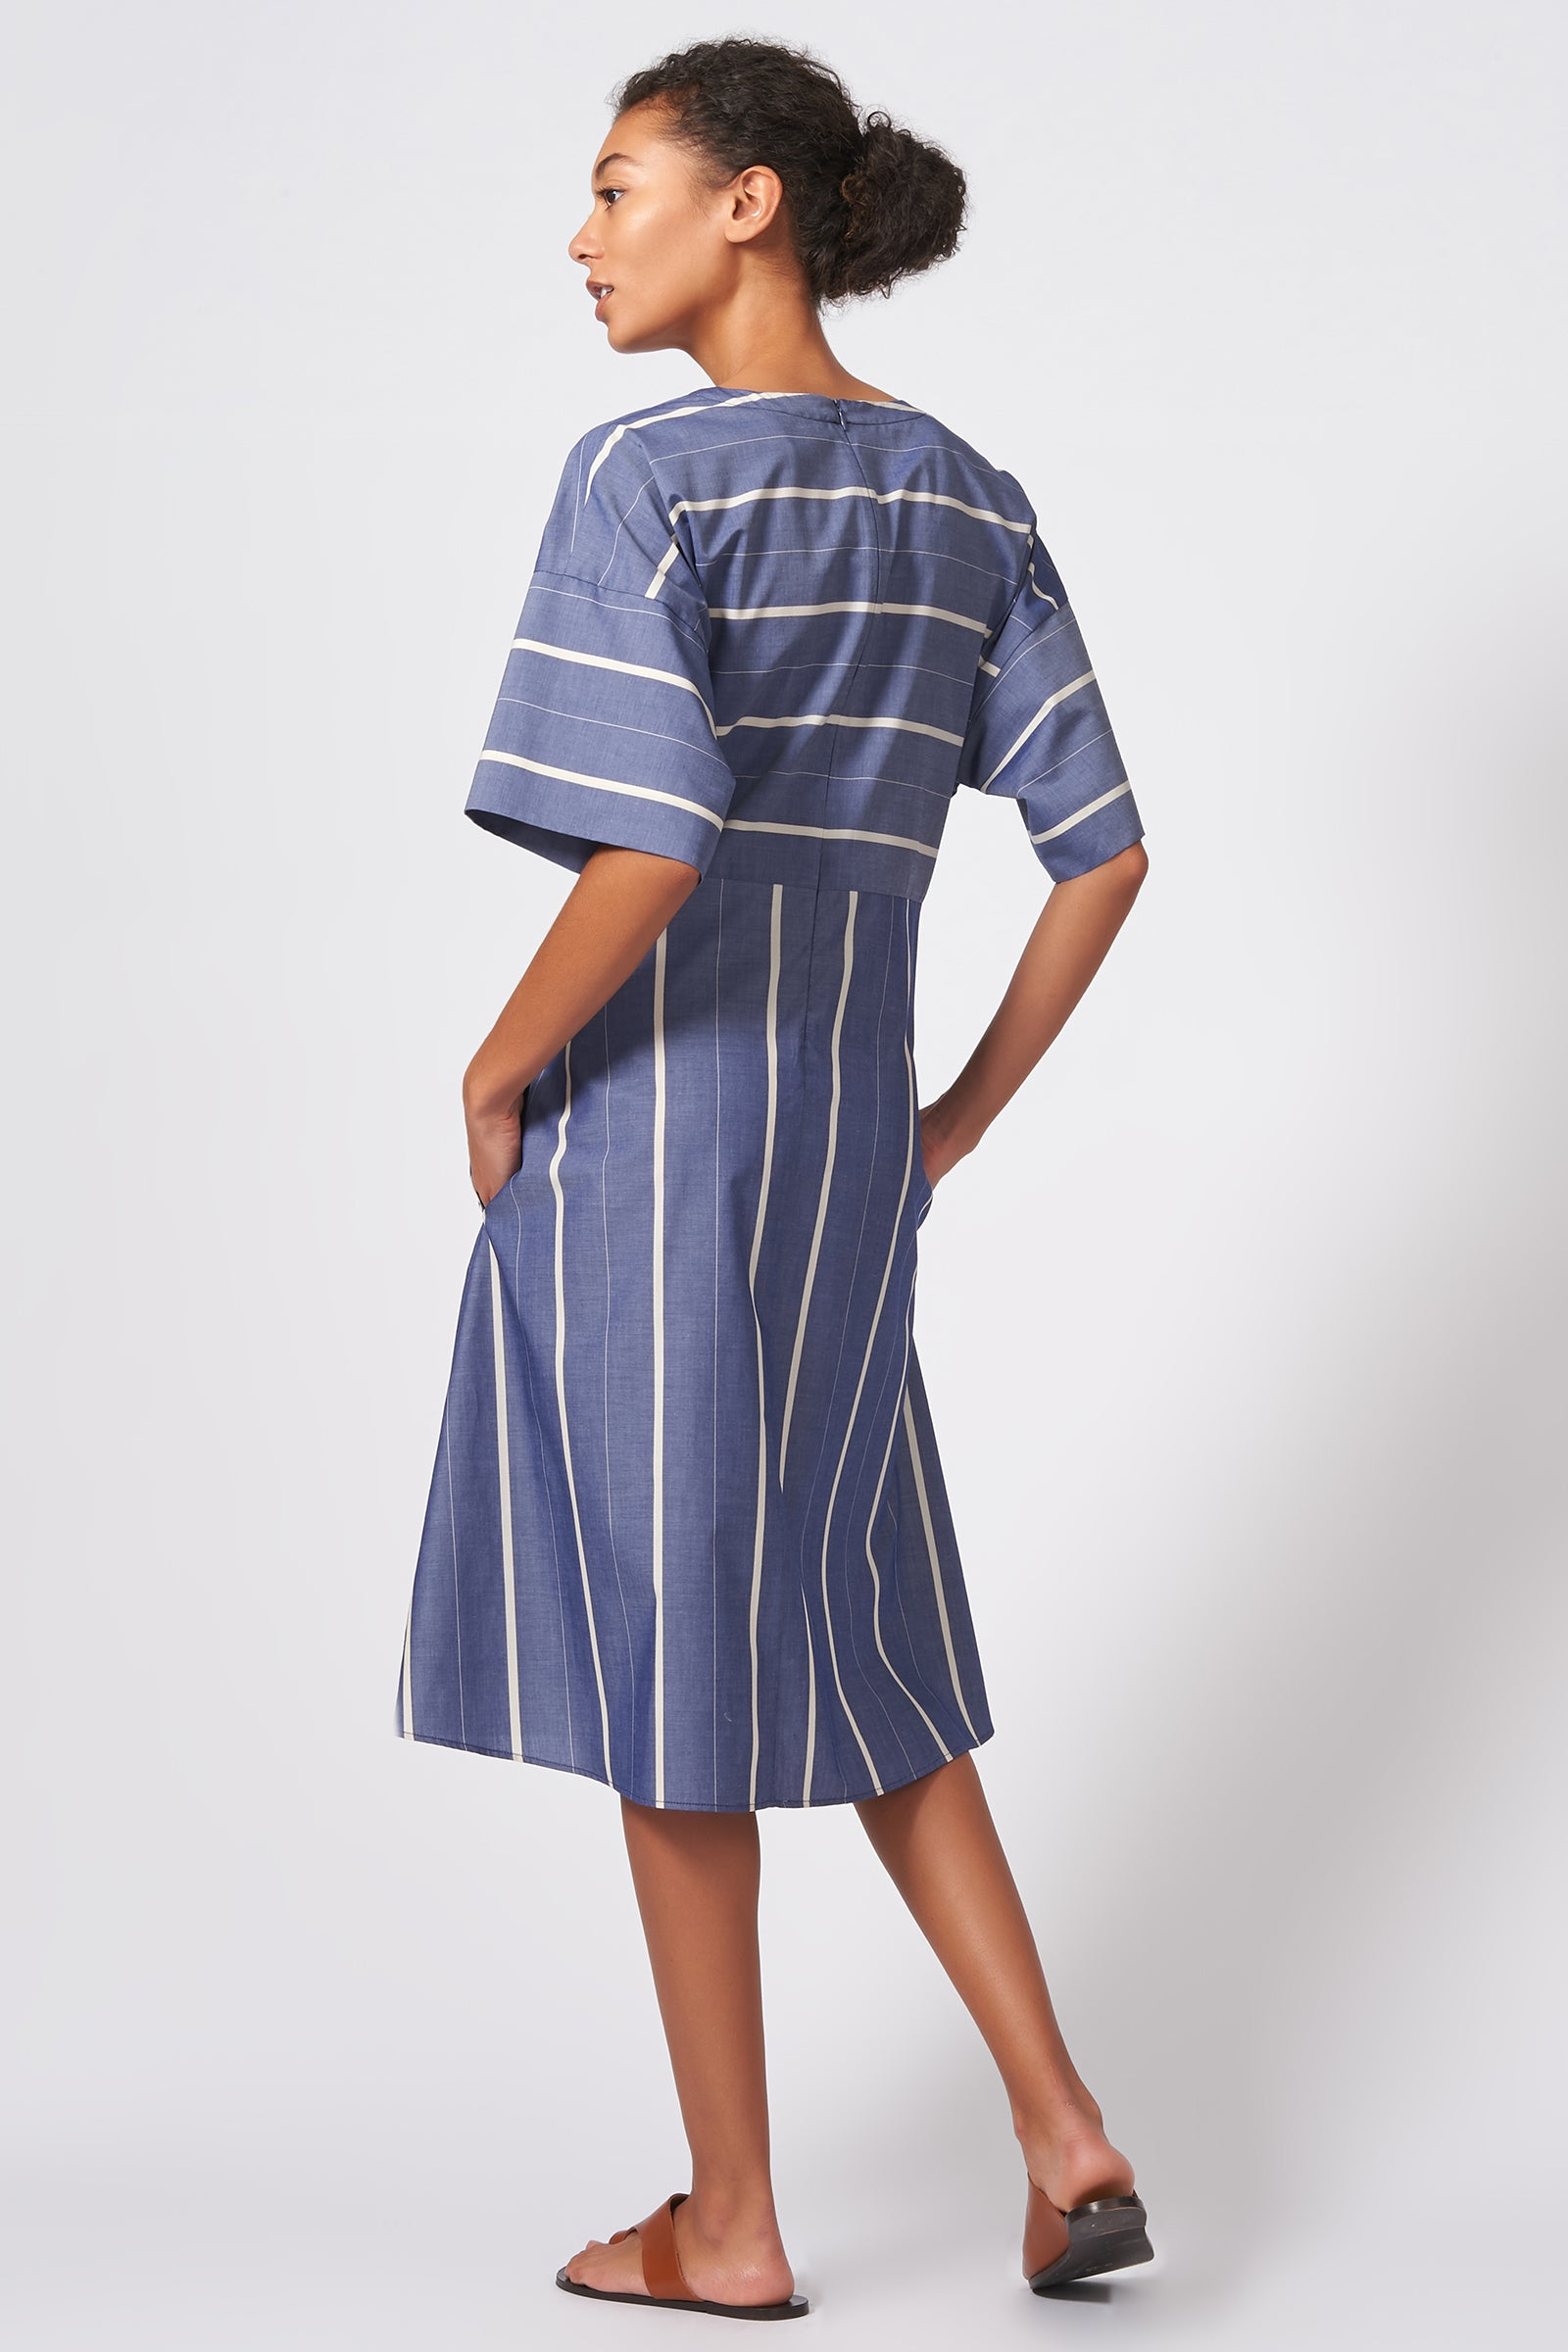 Kal Rieman Cross Front Dress in Chambray Stripe on Model Front View